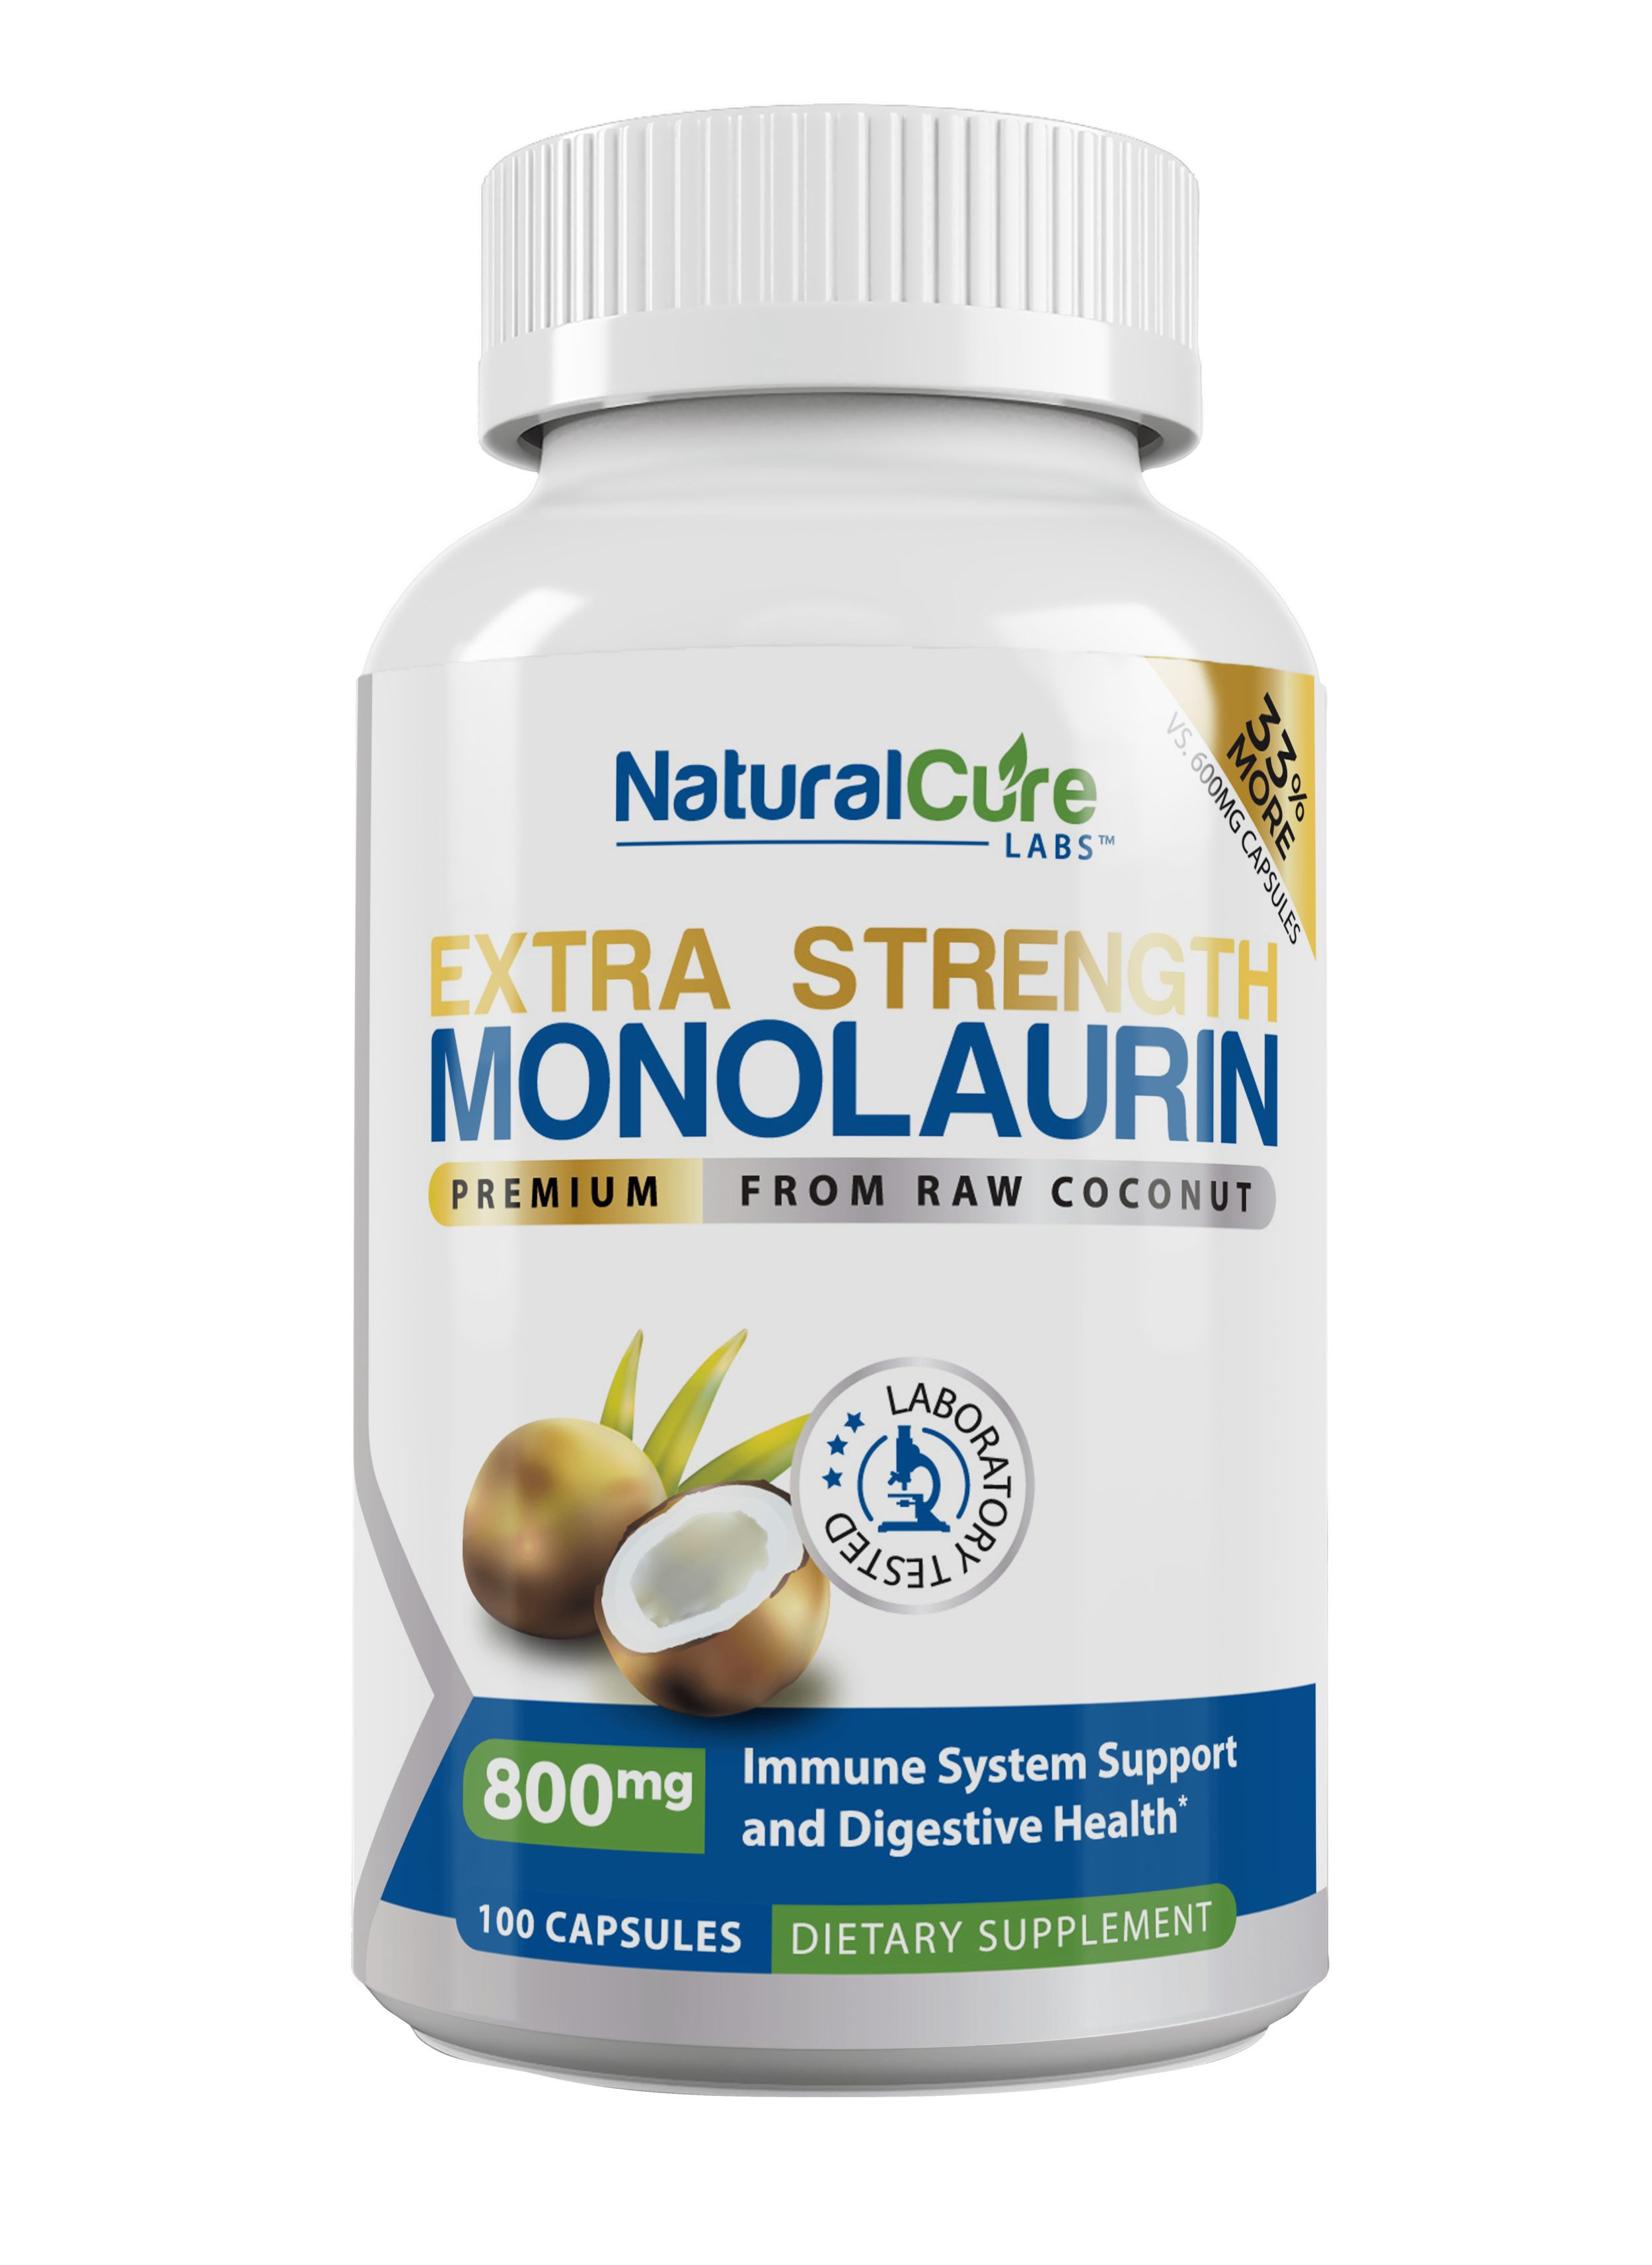 Natural Cure Labs Monolaurin Extra Strength